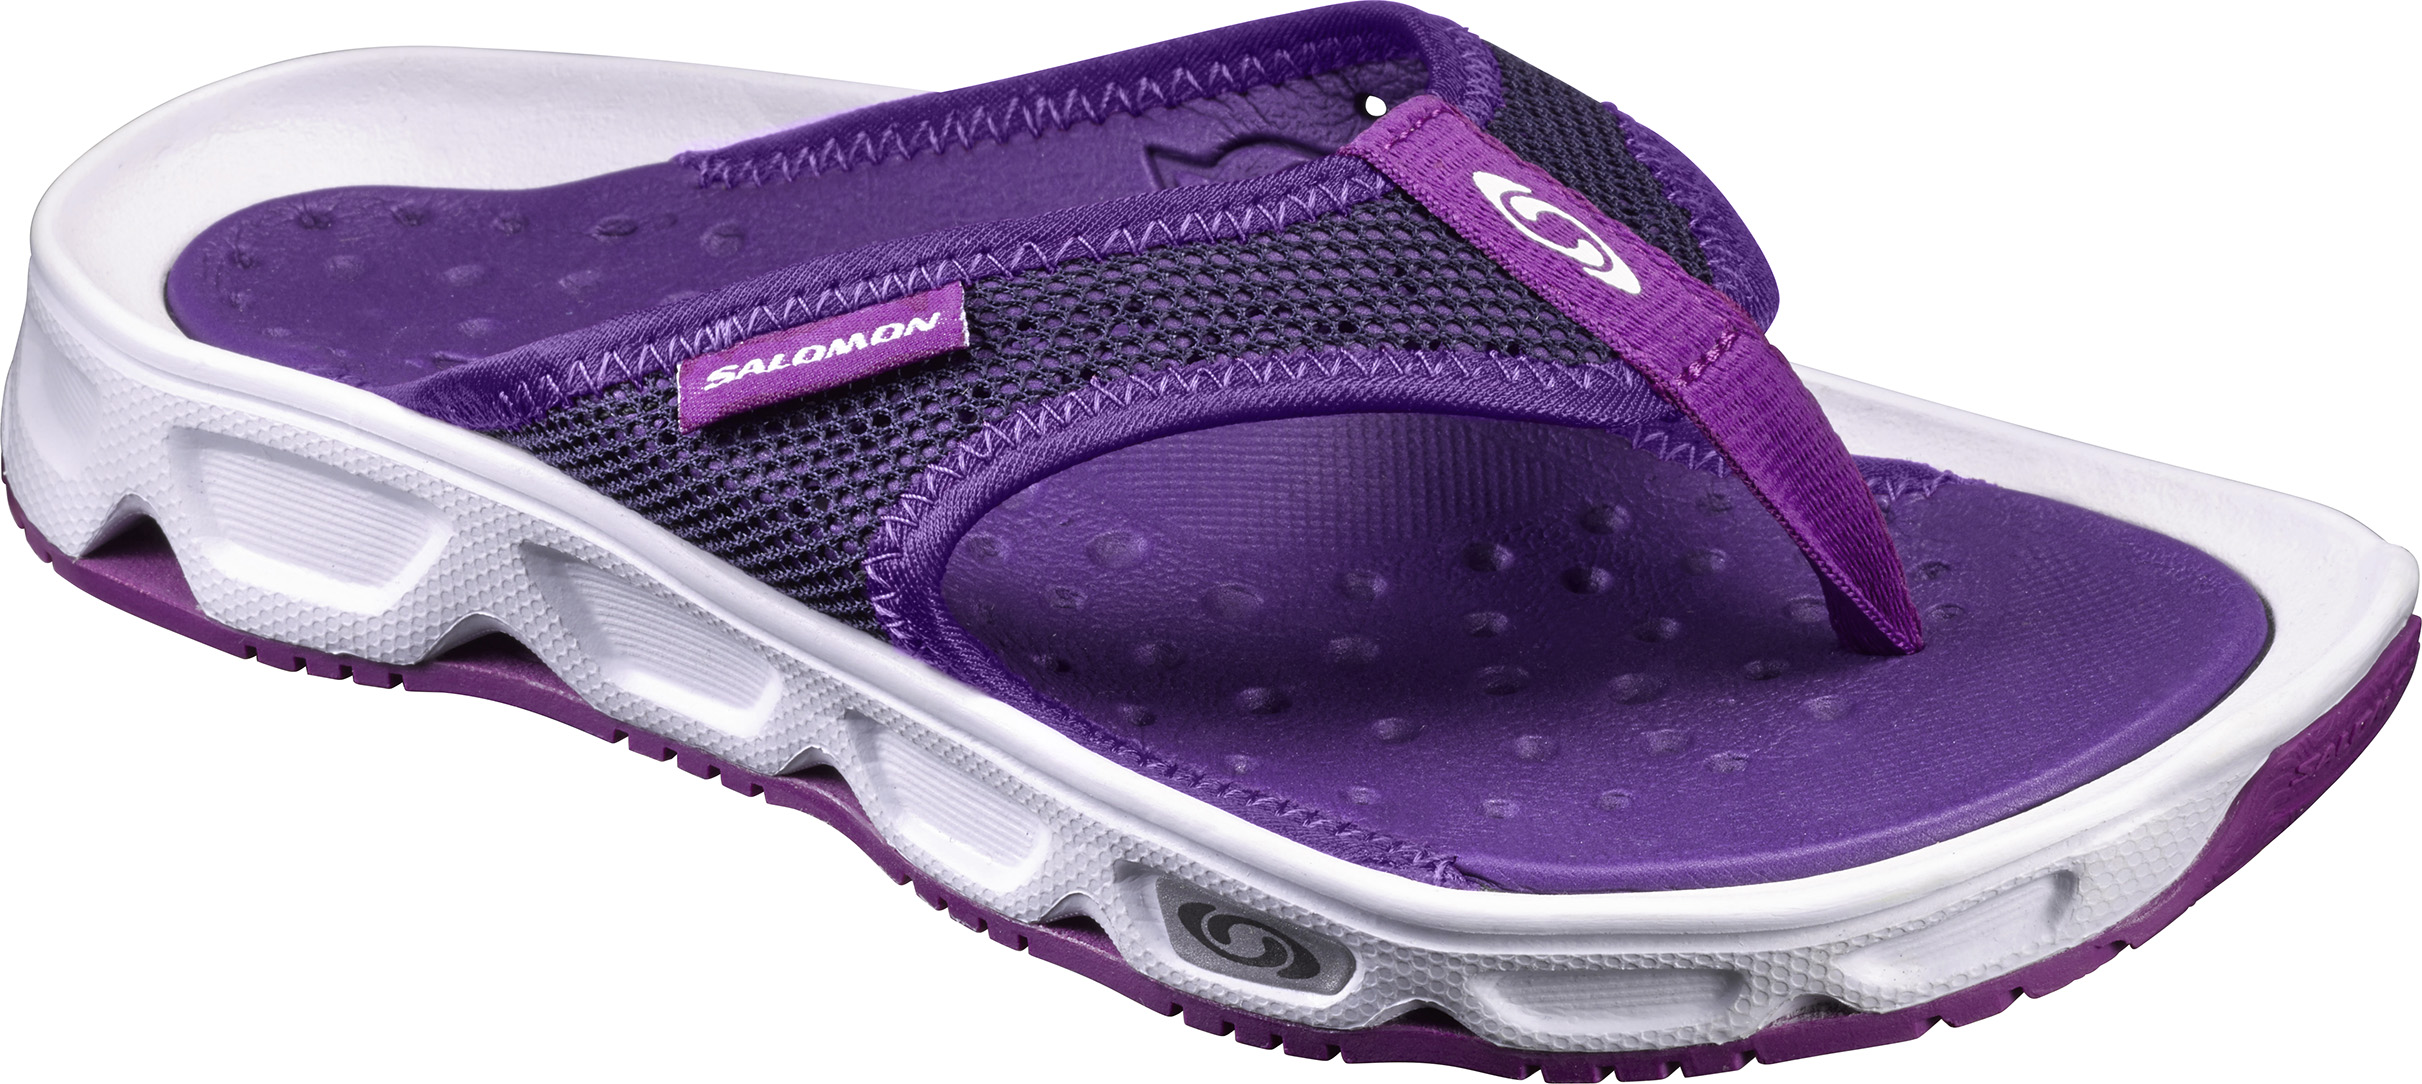 Salomon RX Break W 392497 fialová 38